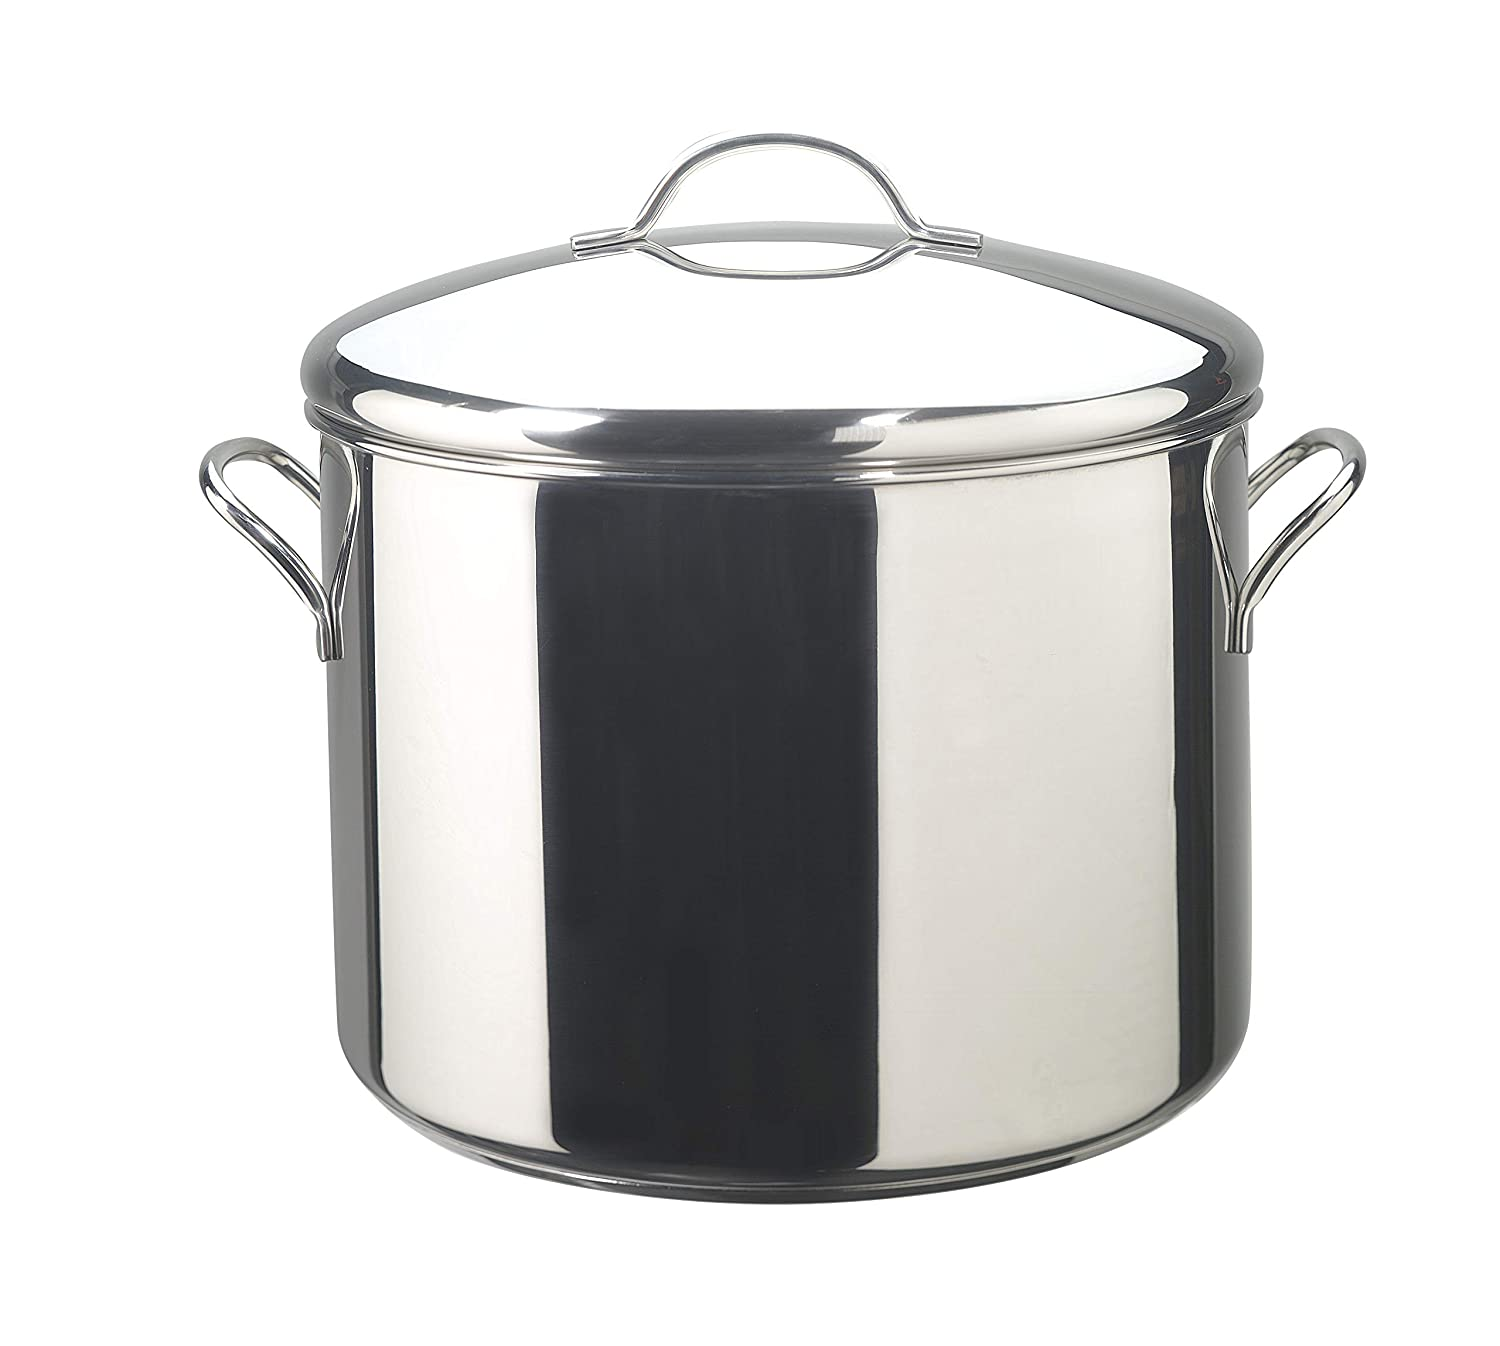 Farberware Classic Stainless Steel Stock Pot with Lid - 16 Quart, Silver